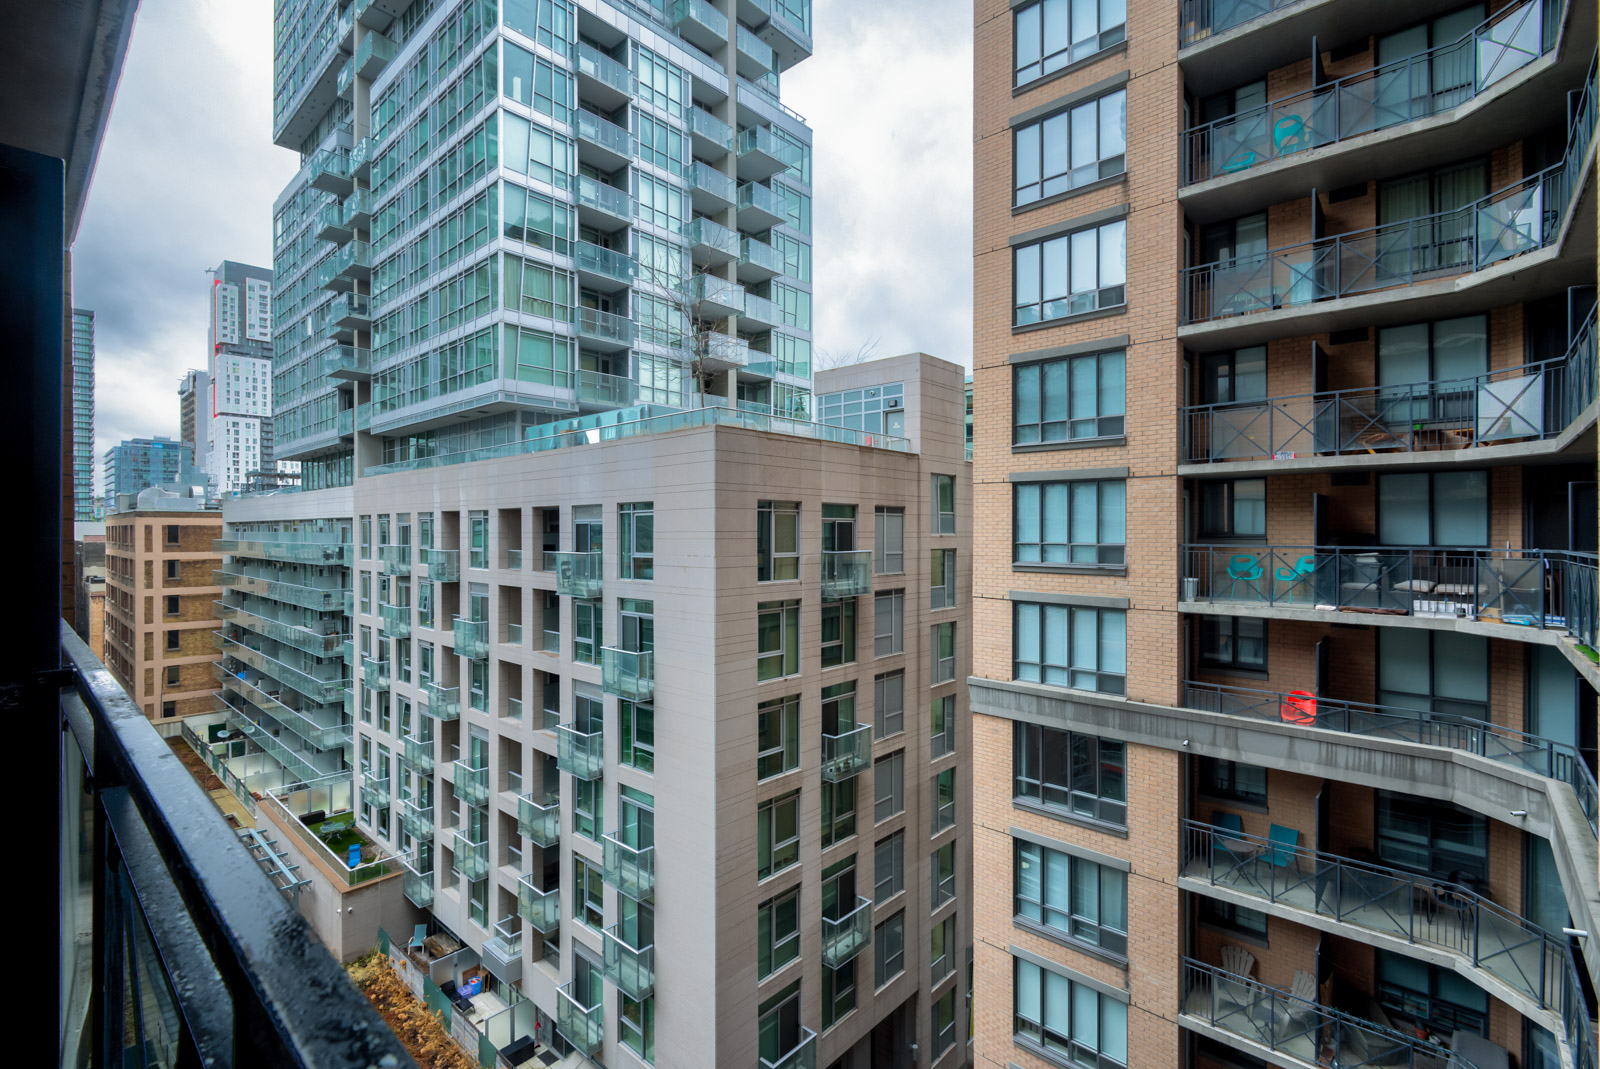 View of neighbouring buildings from balcony of 140 Simcoe St E Unit 921.